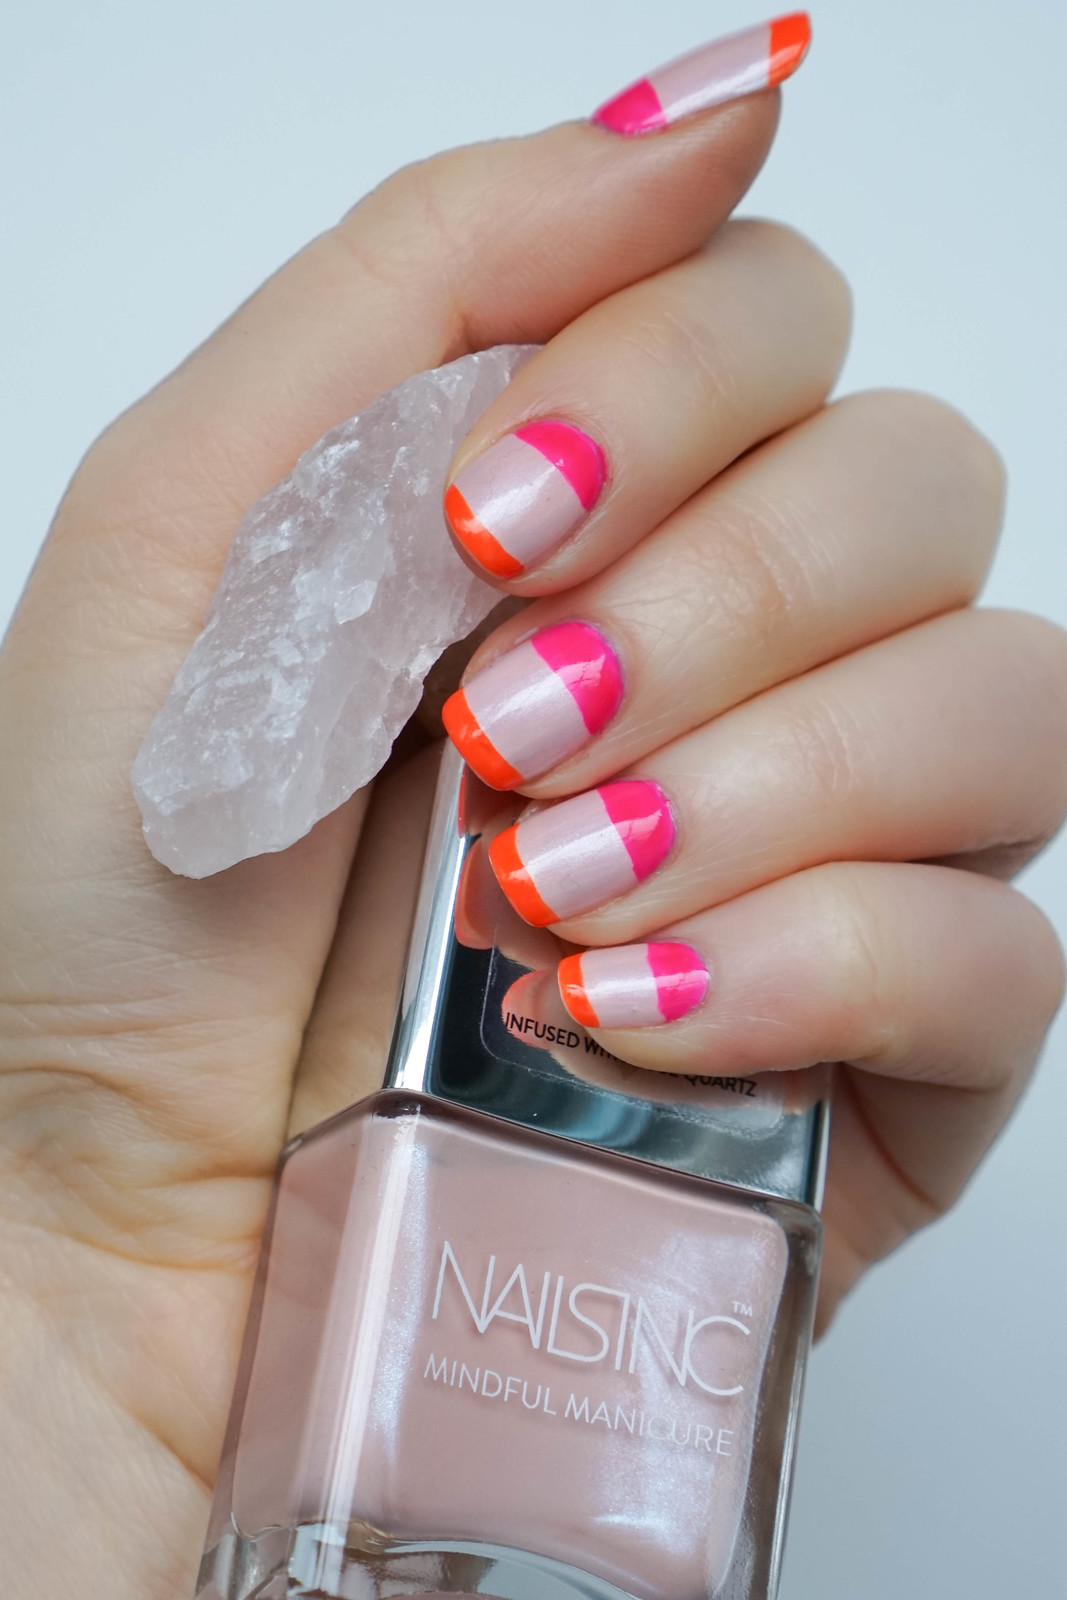 Crystal Infused Nail Polish | Nails Inc Mindful Manicure